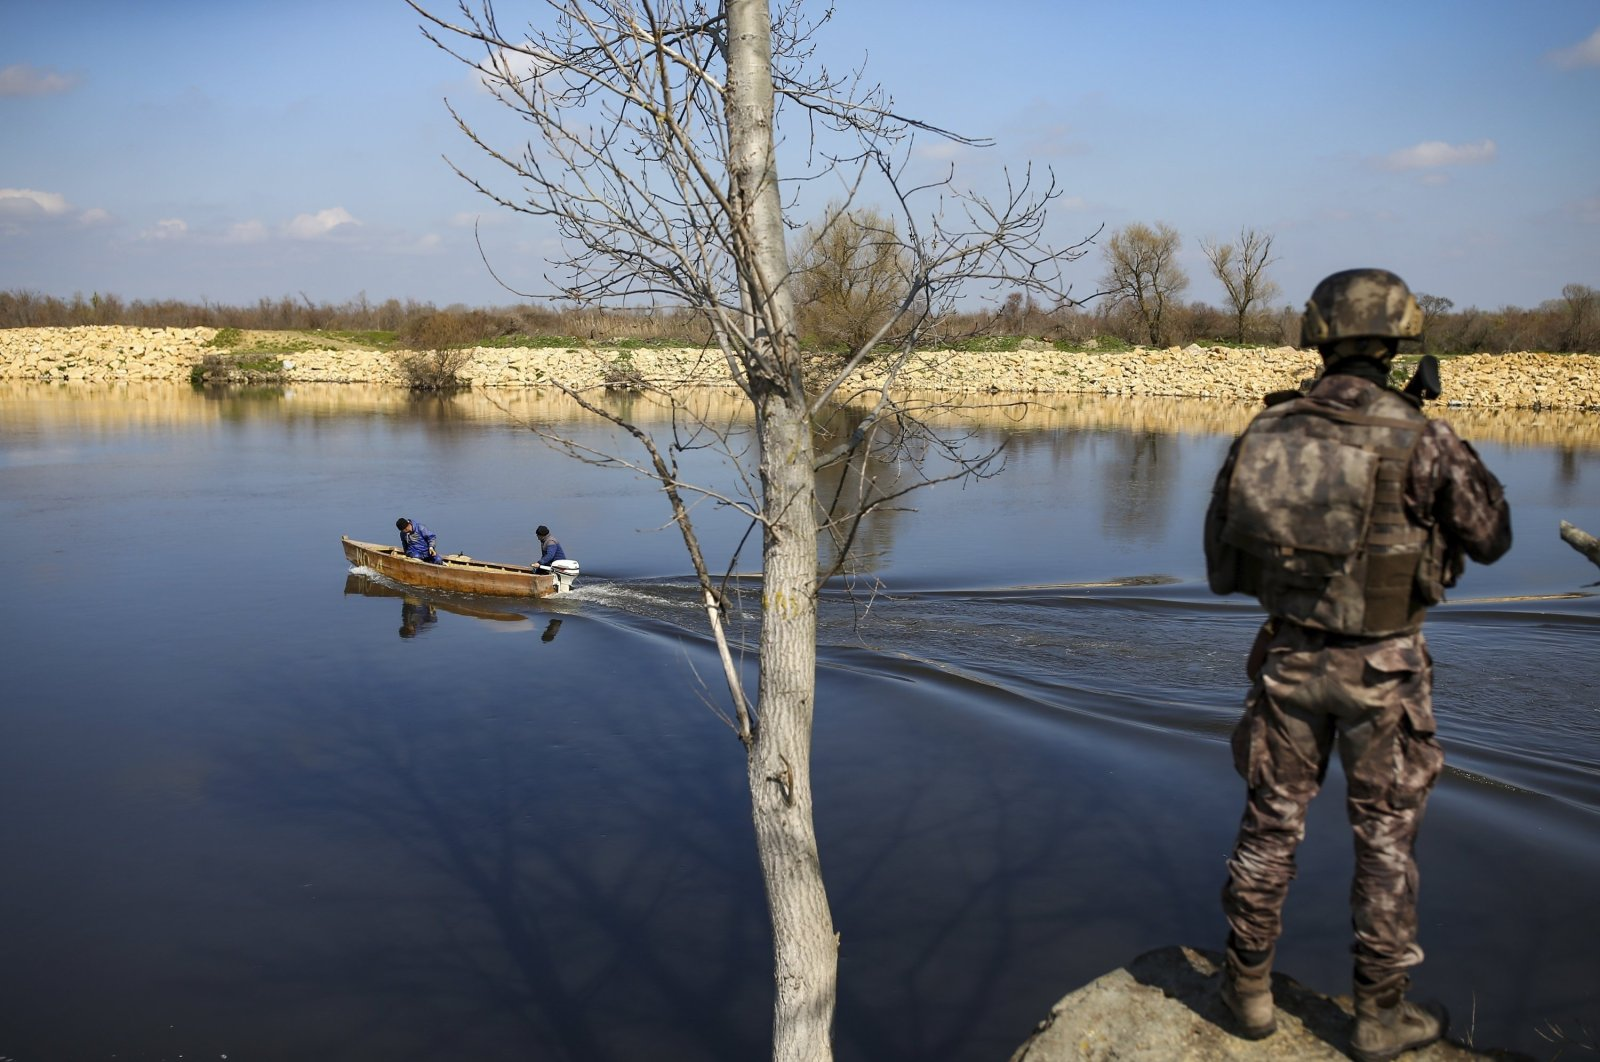 Fishermen sail along the Maritsa river as a Turkish special forces team patrols at the Turkish-Greek border near Karpuzlu village, in Edirne province, northwestern Turkey, March 11, 2020. (AP File Photo)